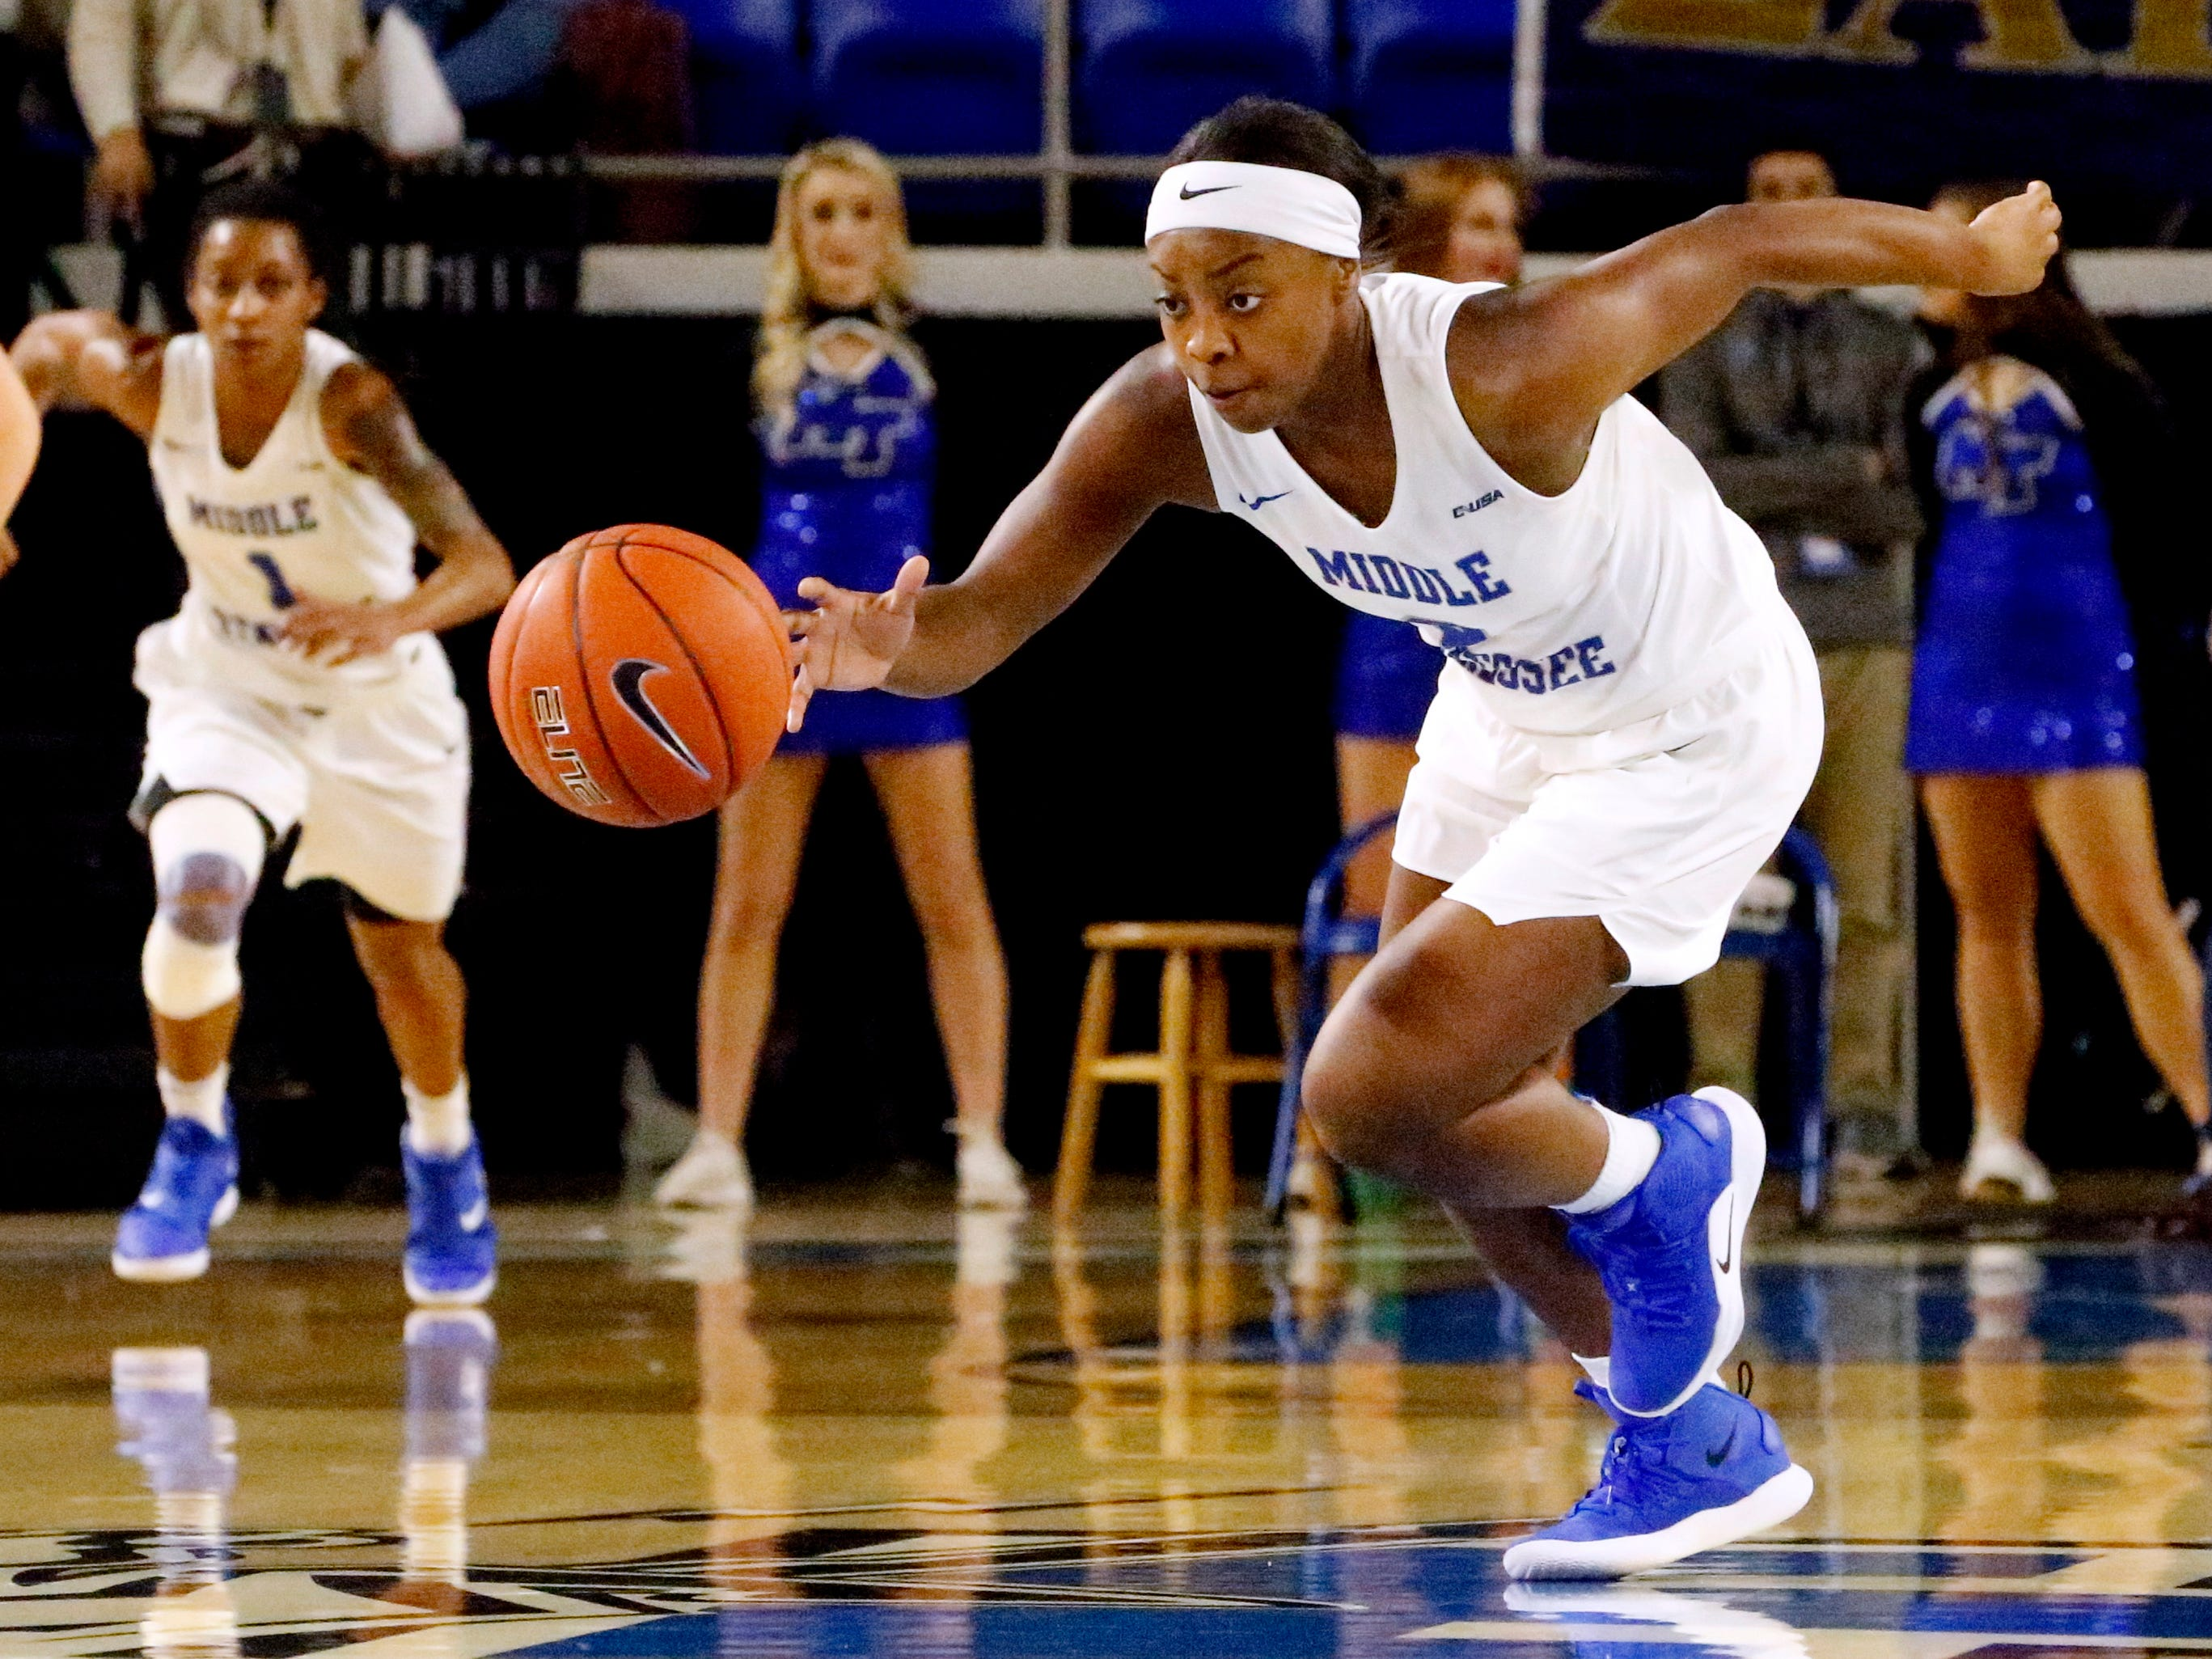 MTSU's guard Taylor Sutton (2) drives the ball down the court after stealing the ball away on Thursday Jan. 24, 2019.